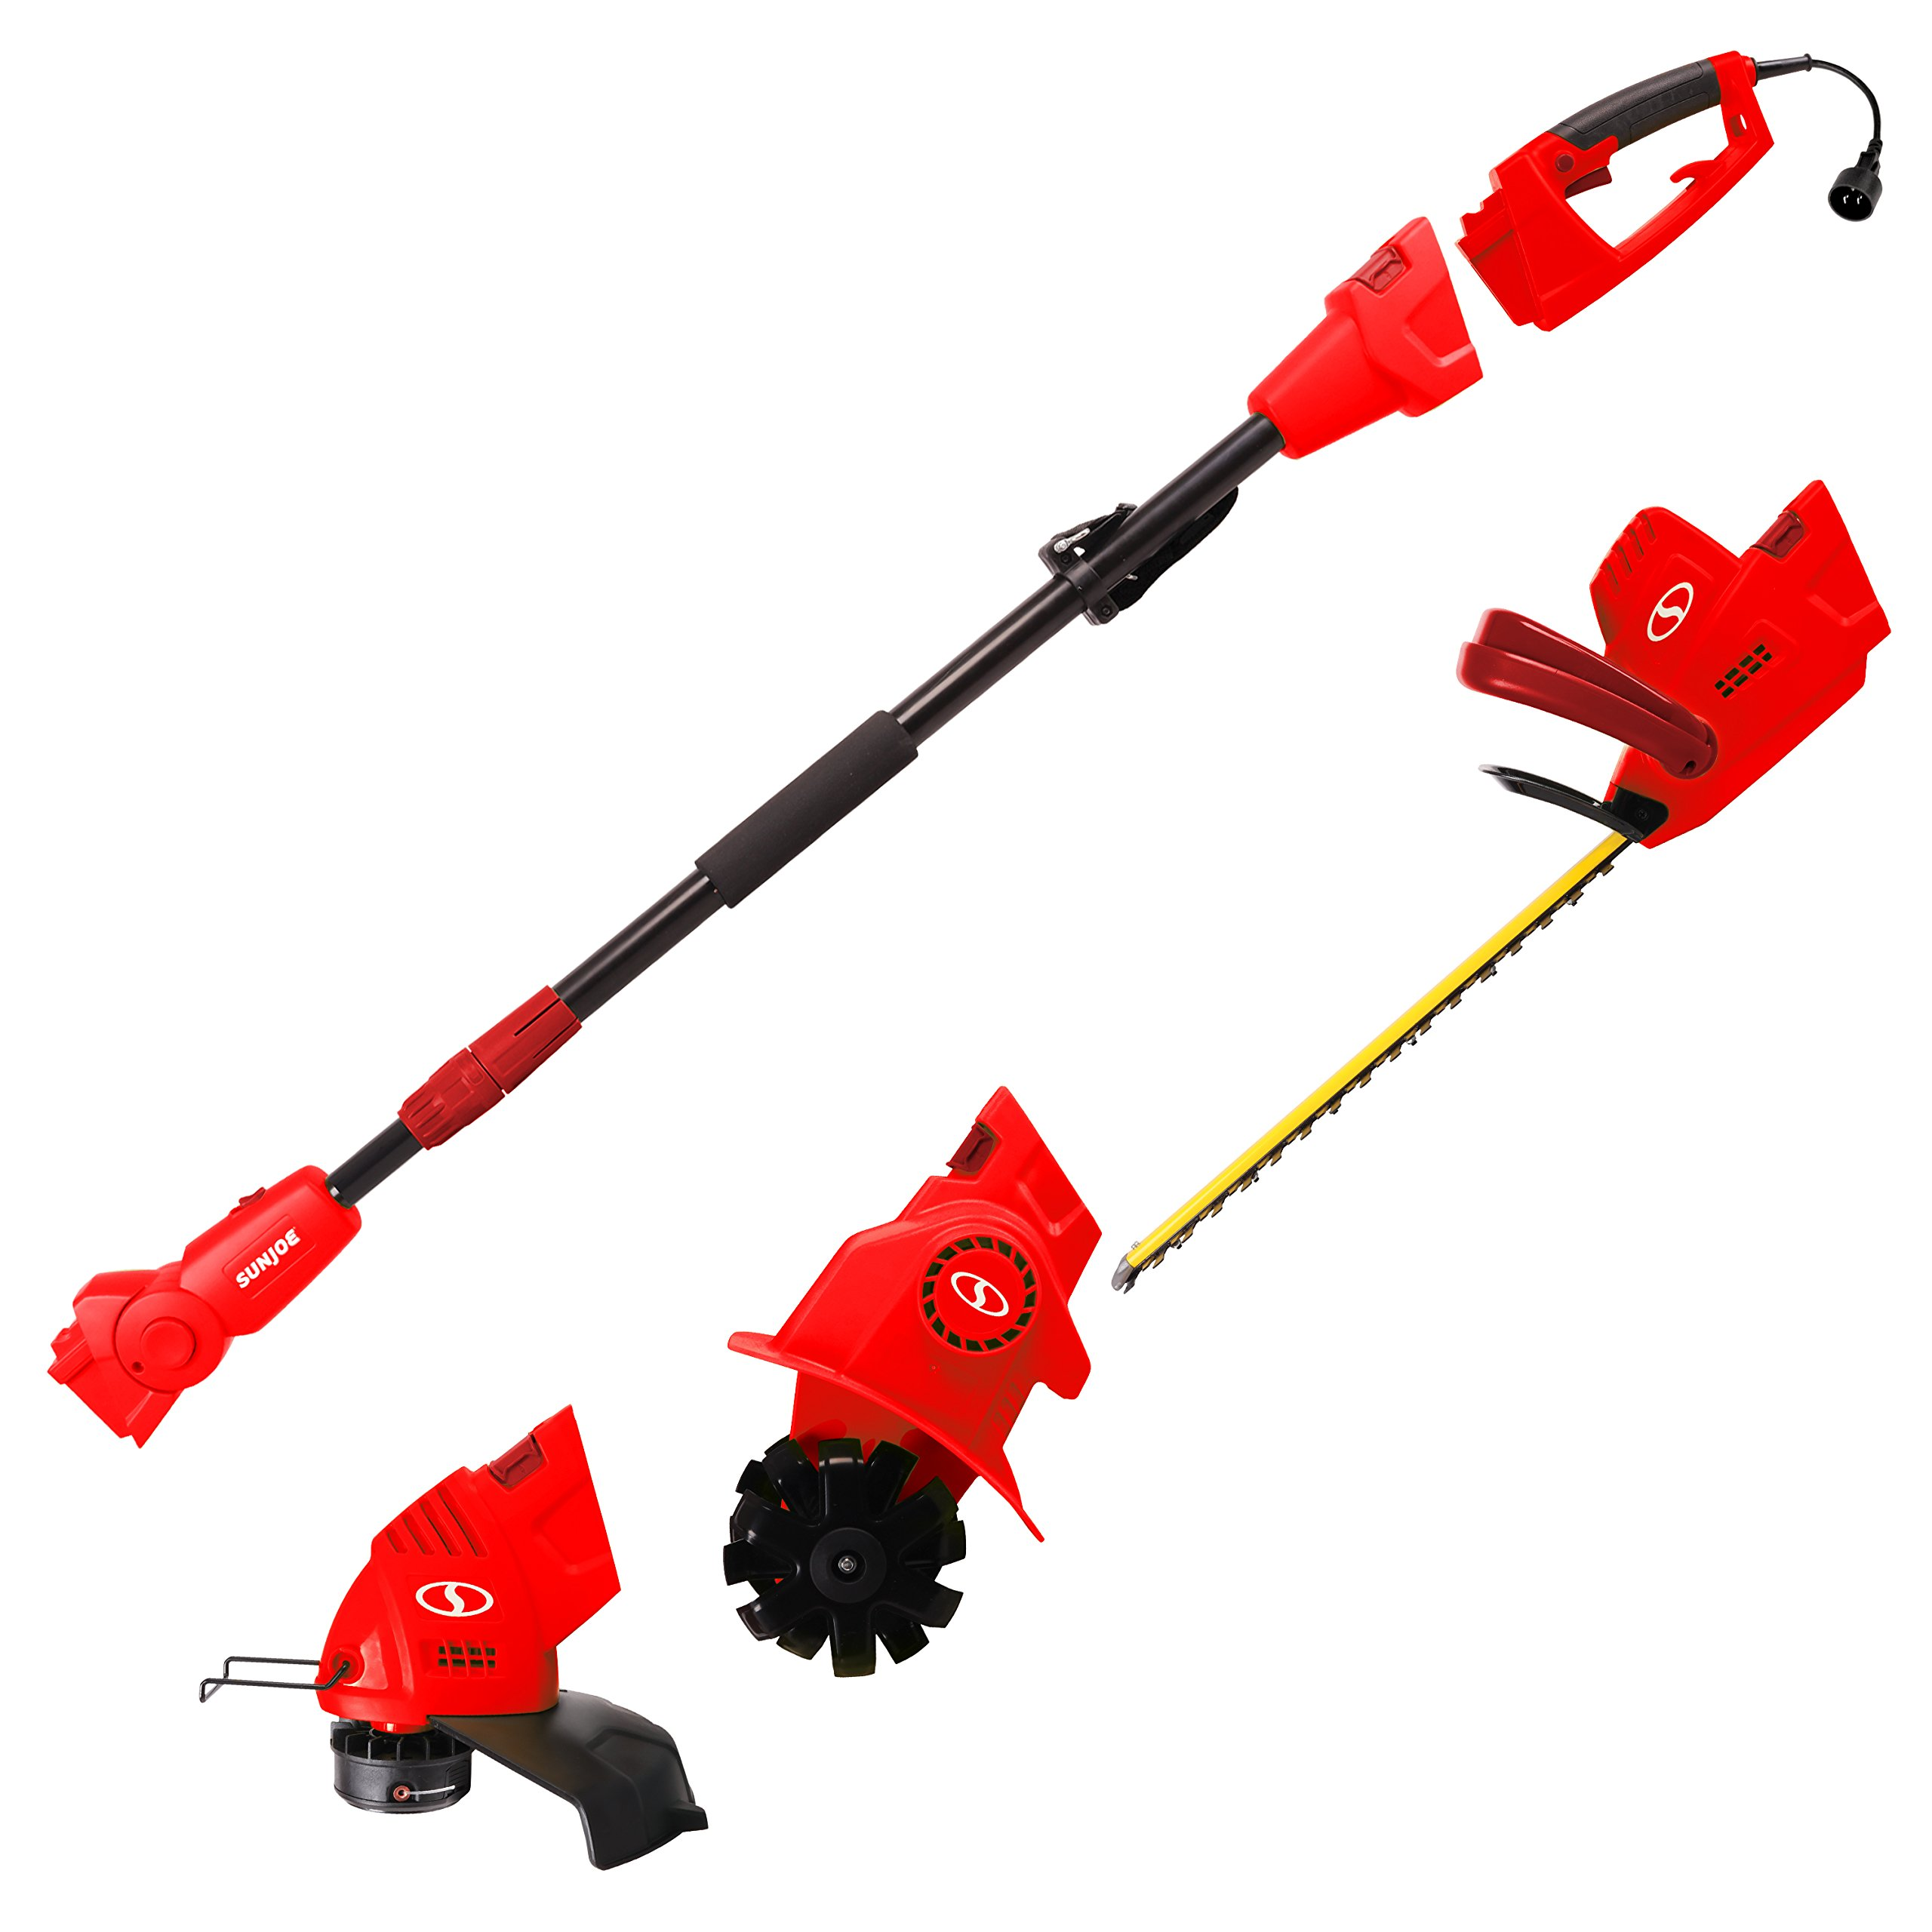 Sun Joe GTS4000E-RED Lawn + Garden Multi-Tool System (Hedge + Pole Trimmer, Grass Trimmer, Garden Tiller), Red by Snow Joe